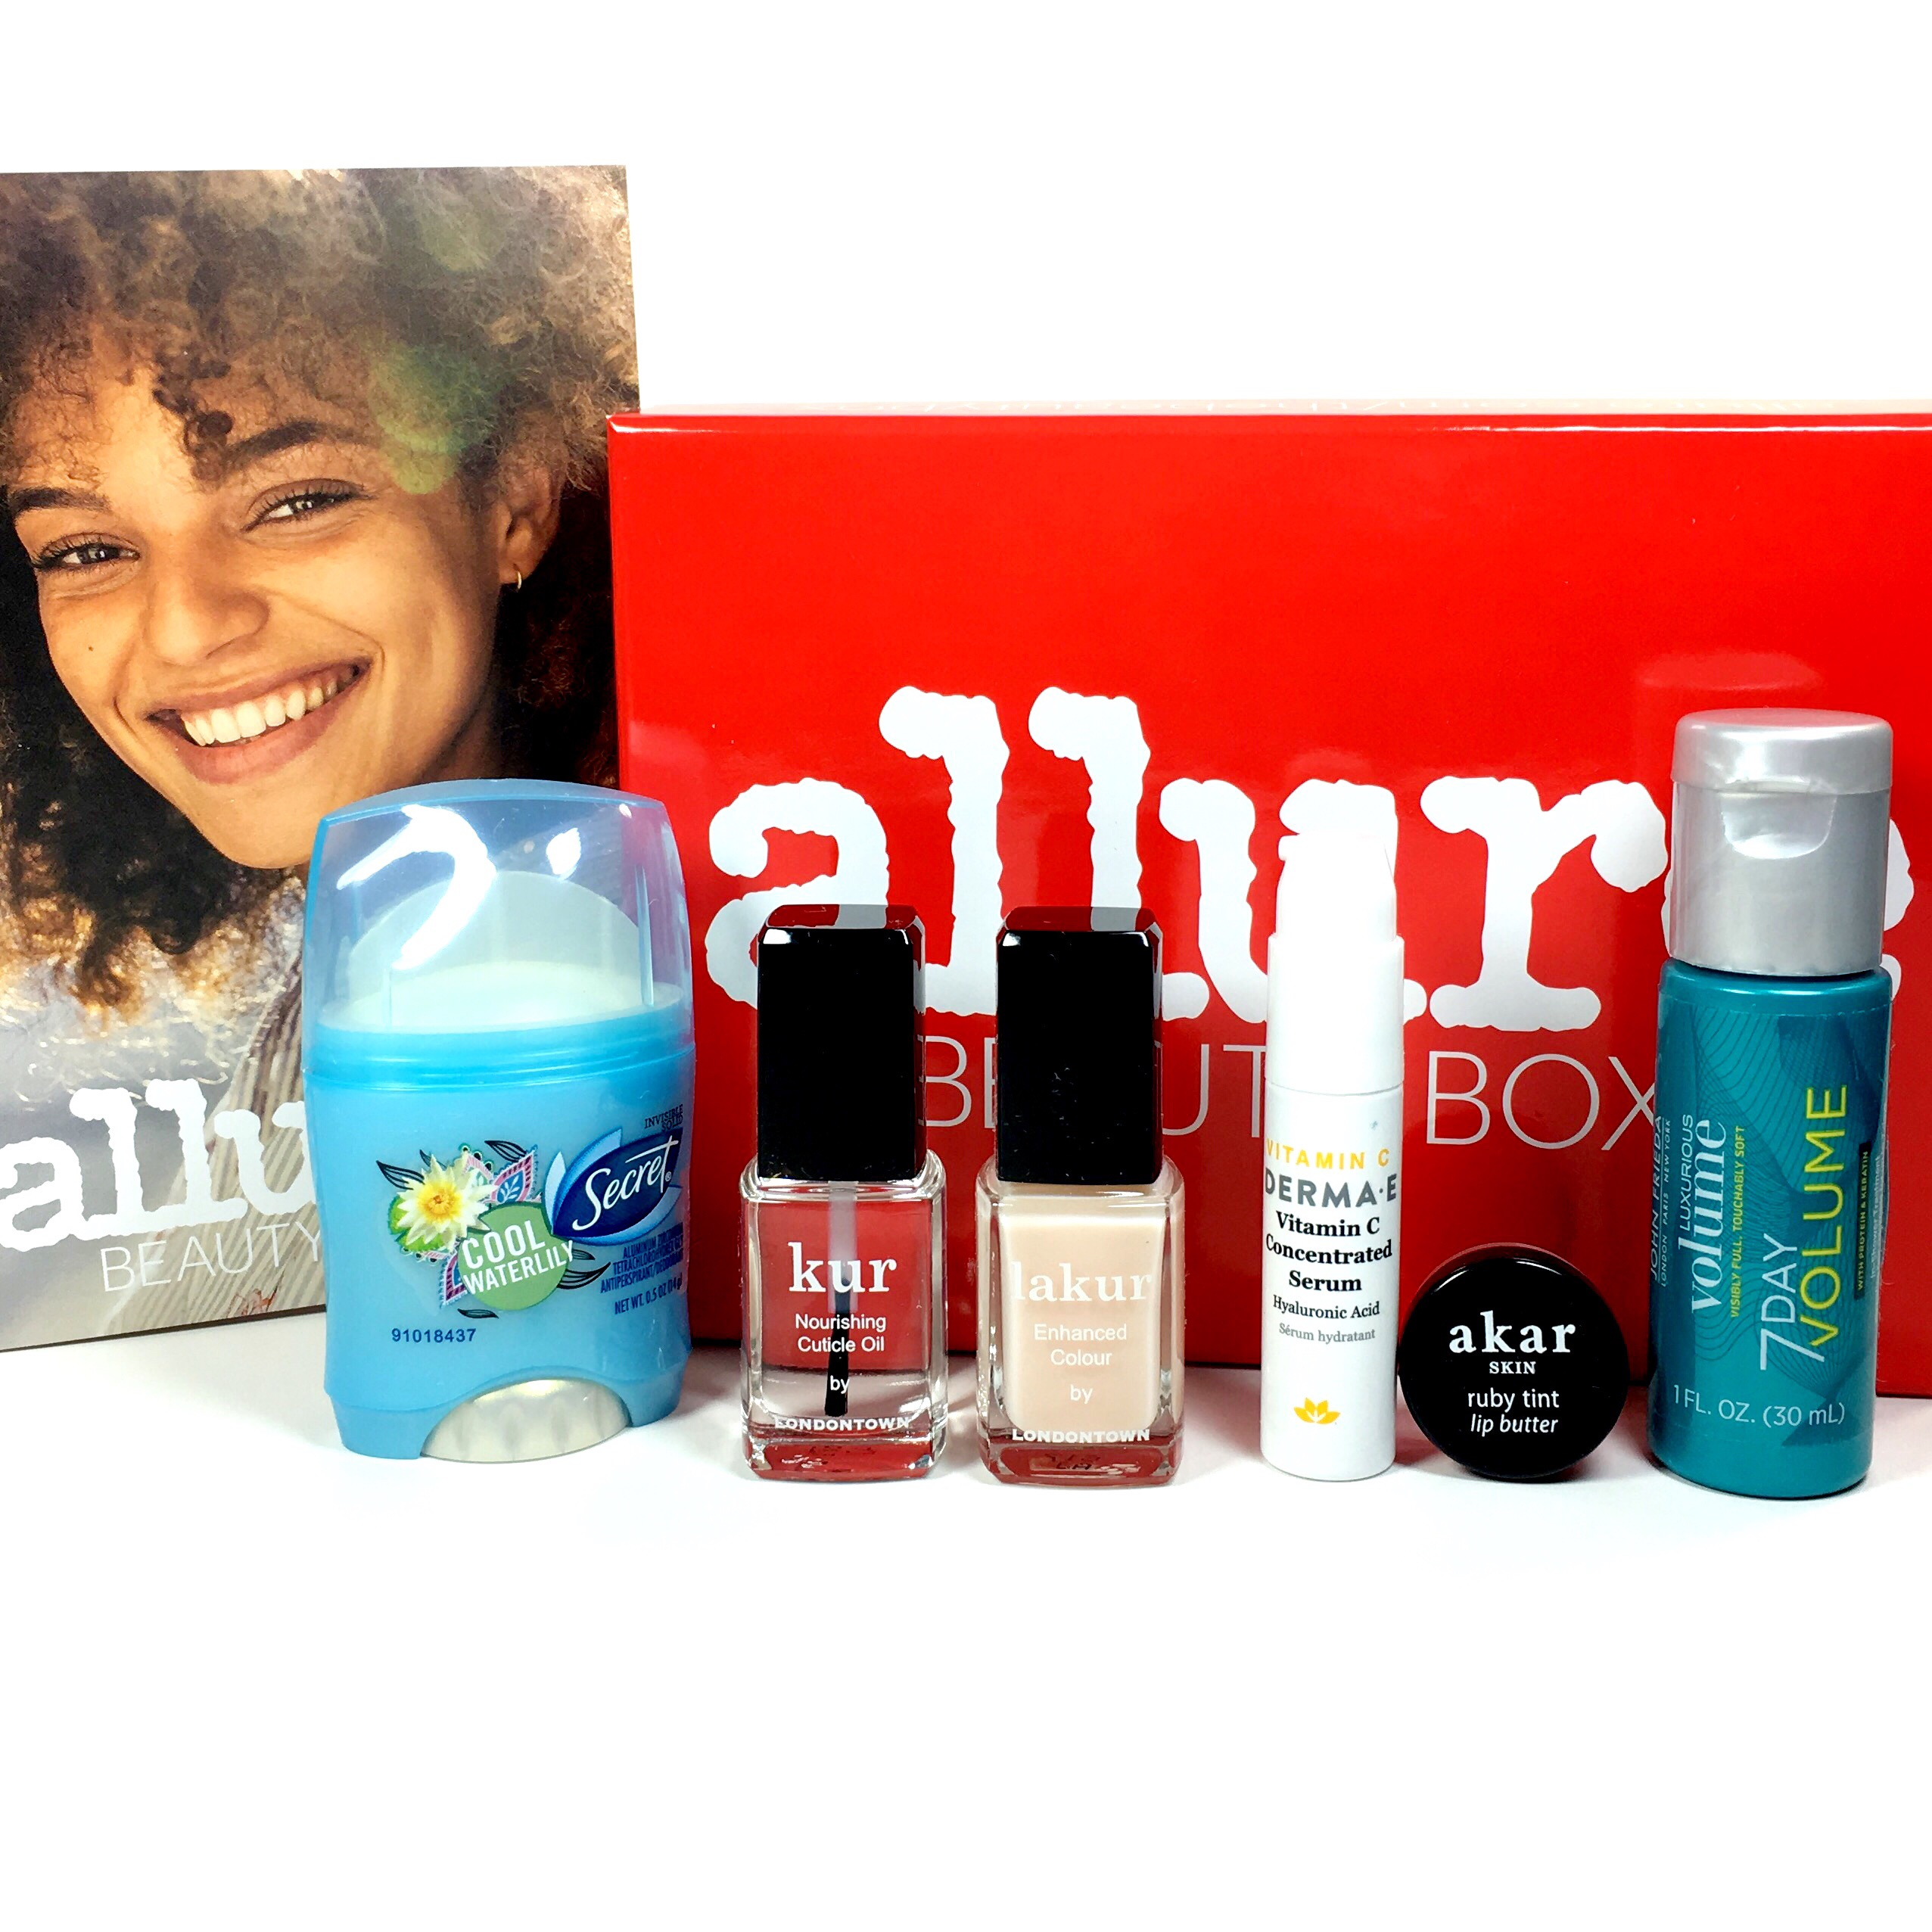 Allure Beauty Box March 2017 Subscription Box Review & Coupon